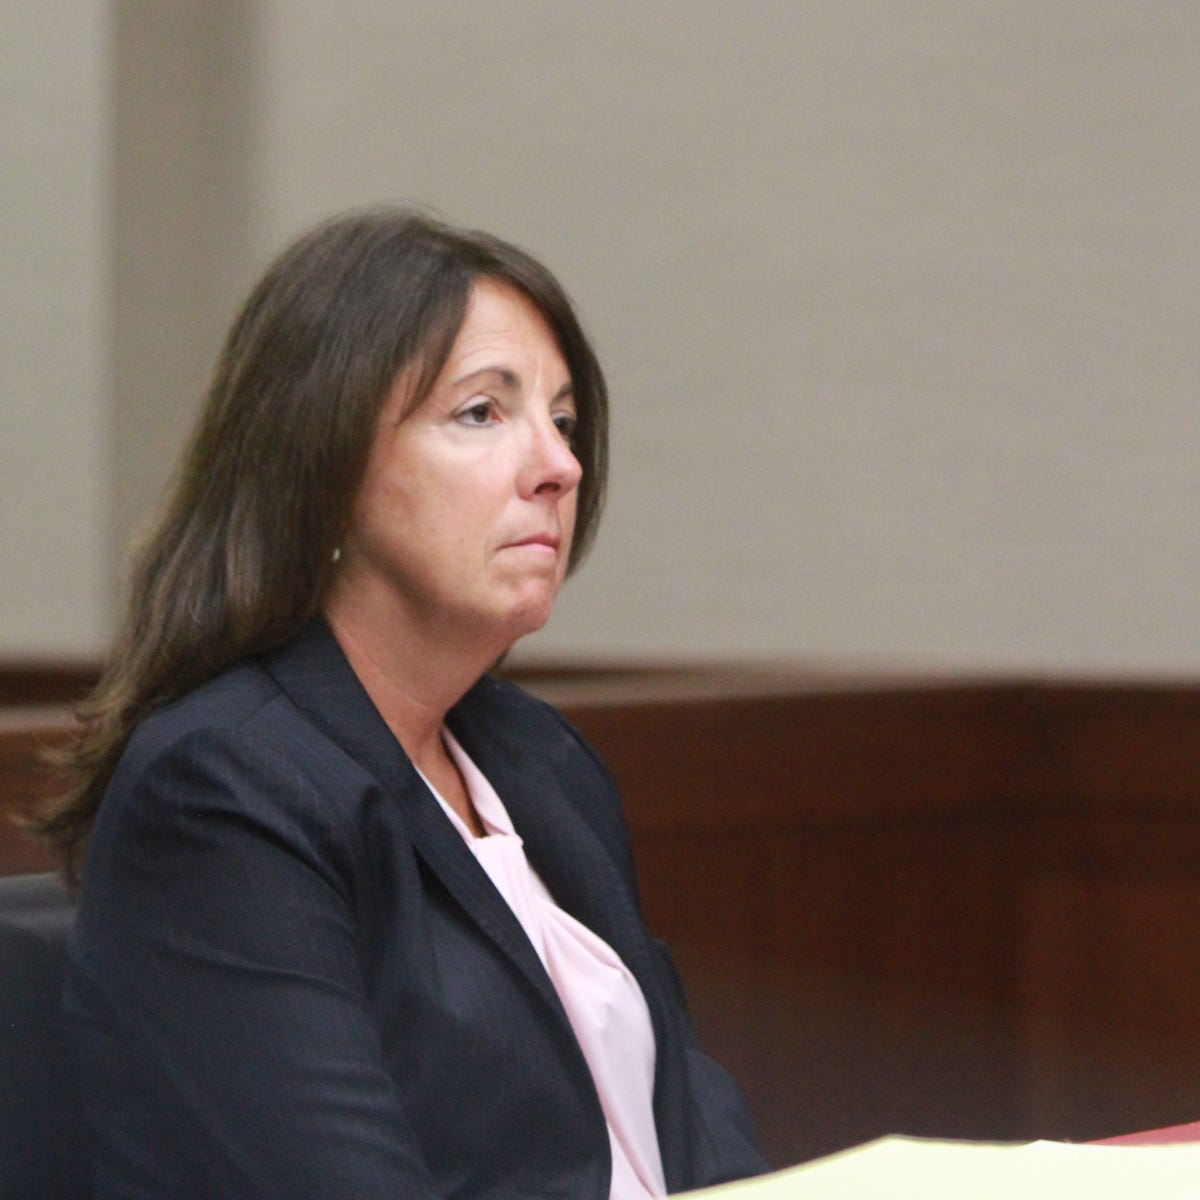 Livingston County drops lawsuit against Judge Theresa Brennan